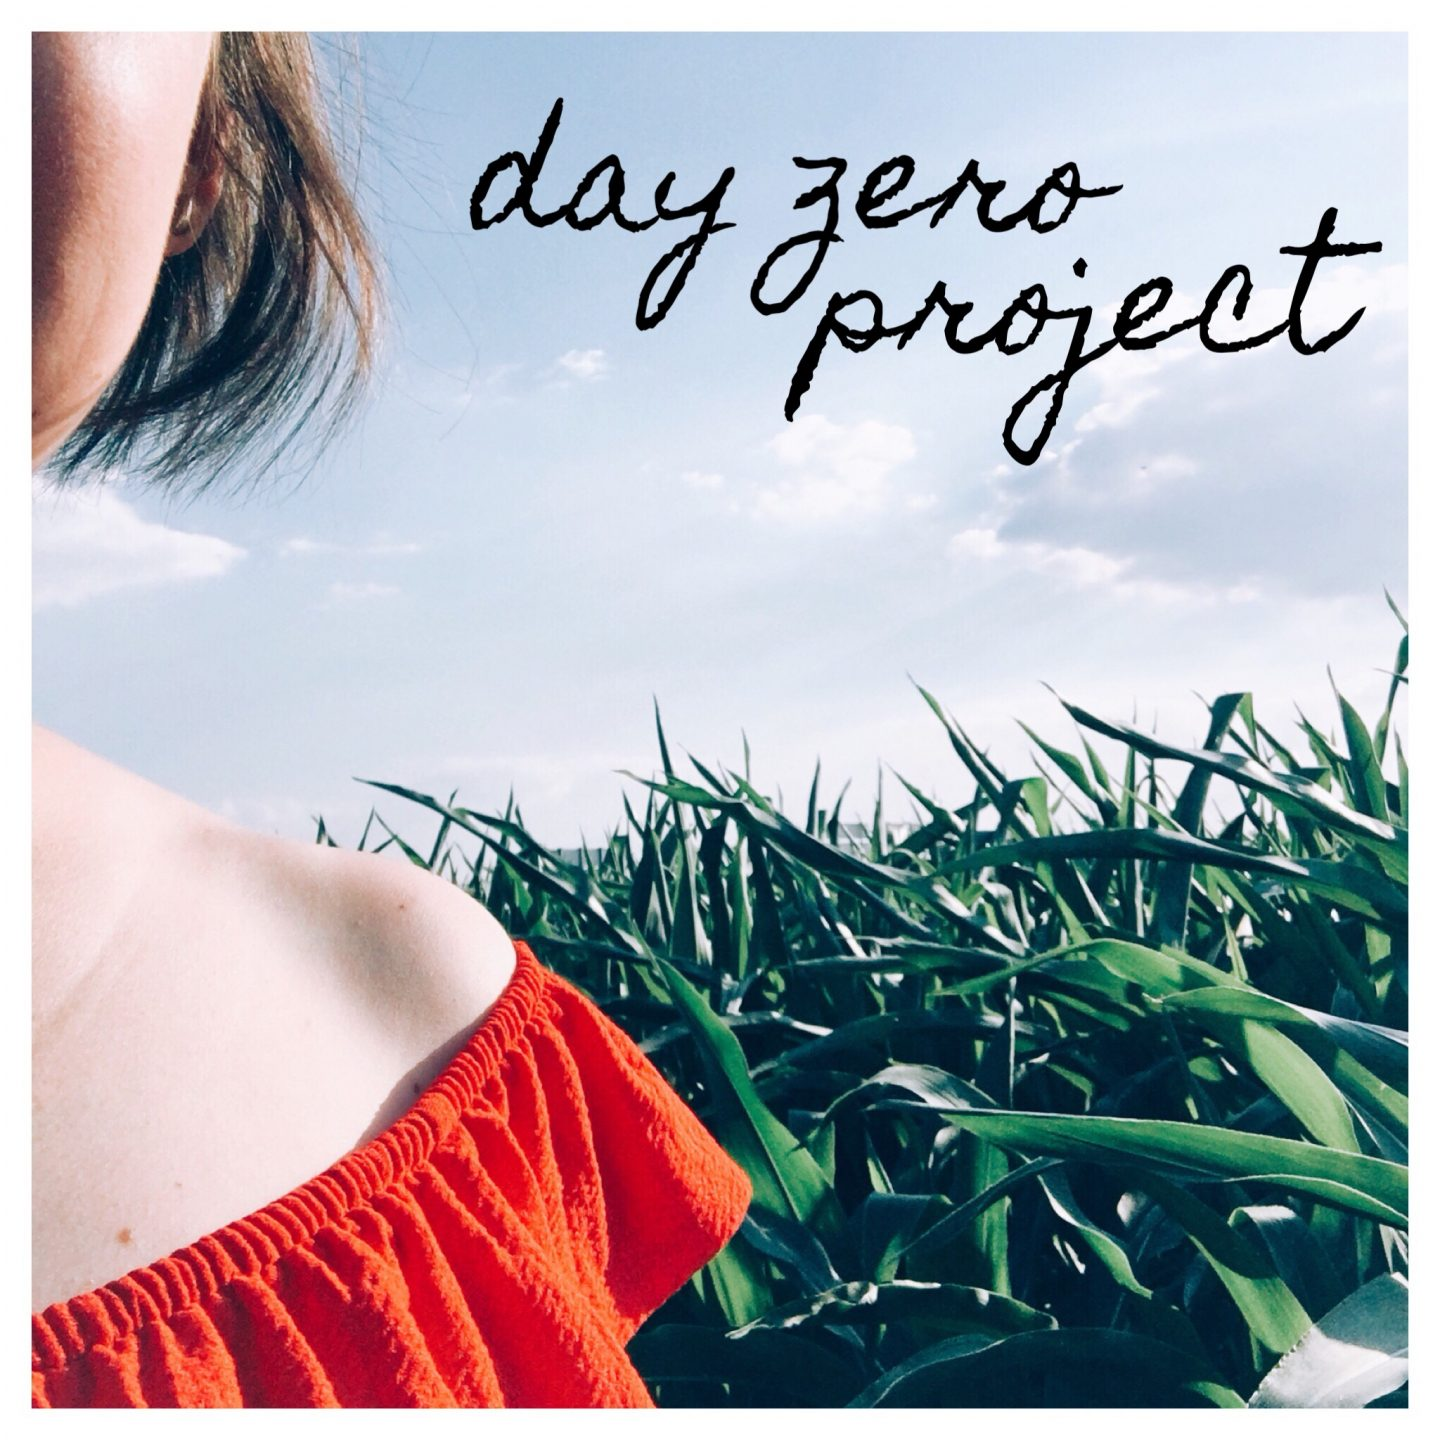 Day zero project | Update 5